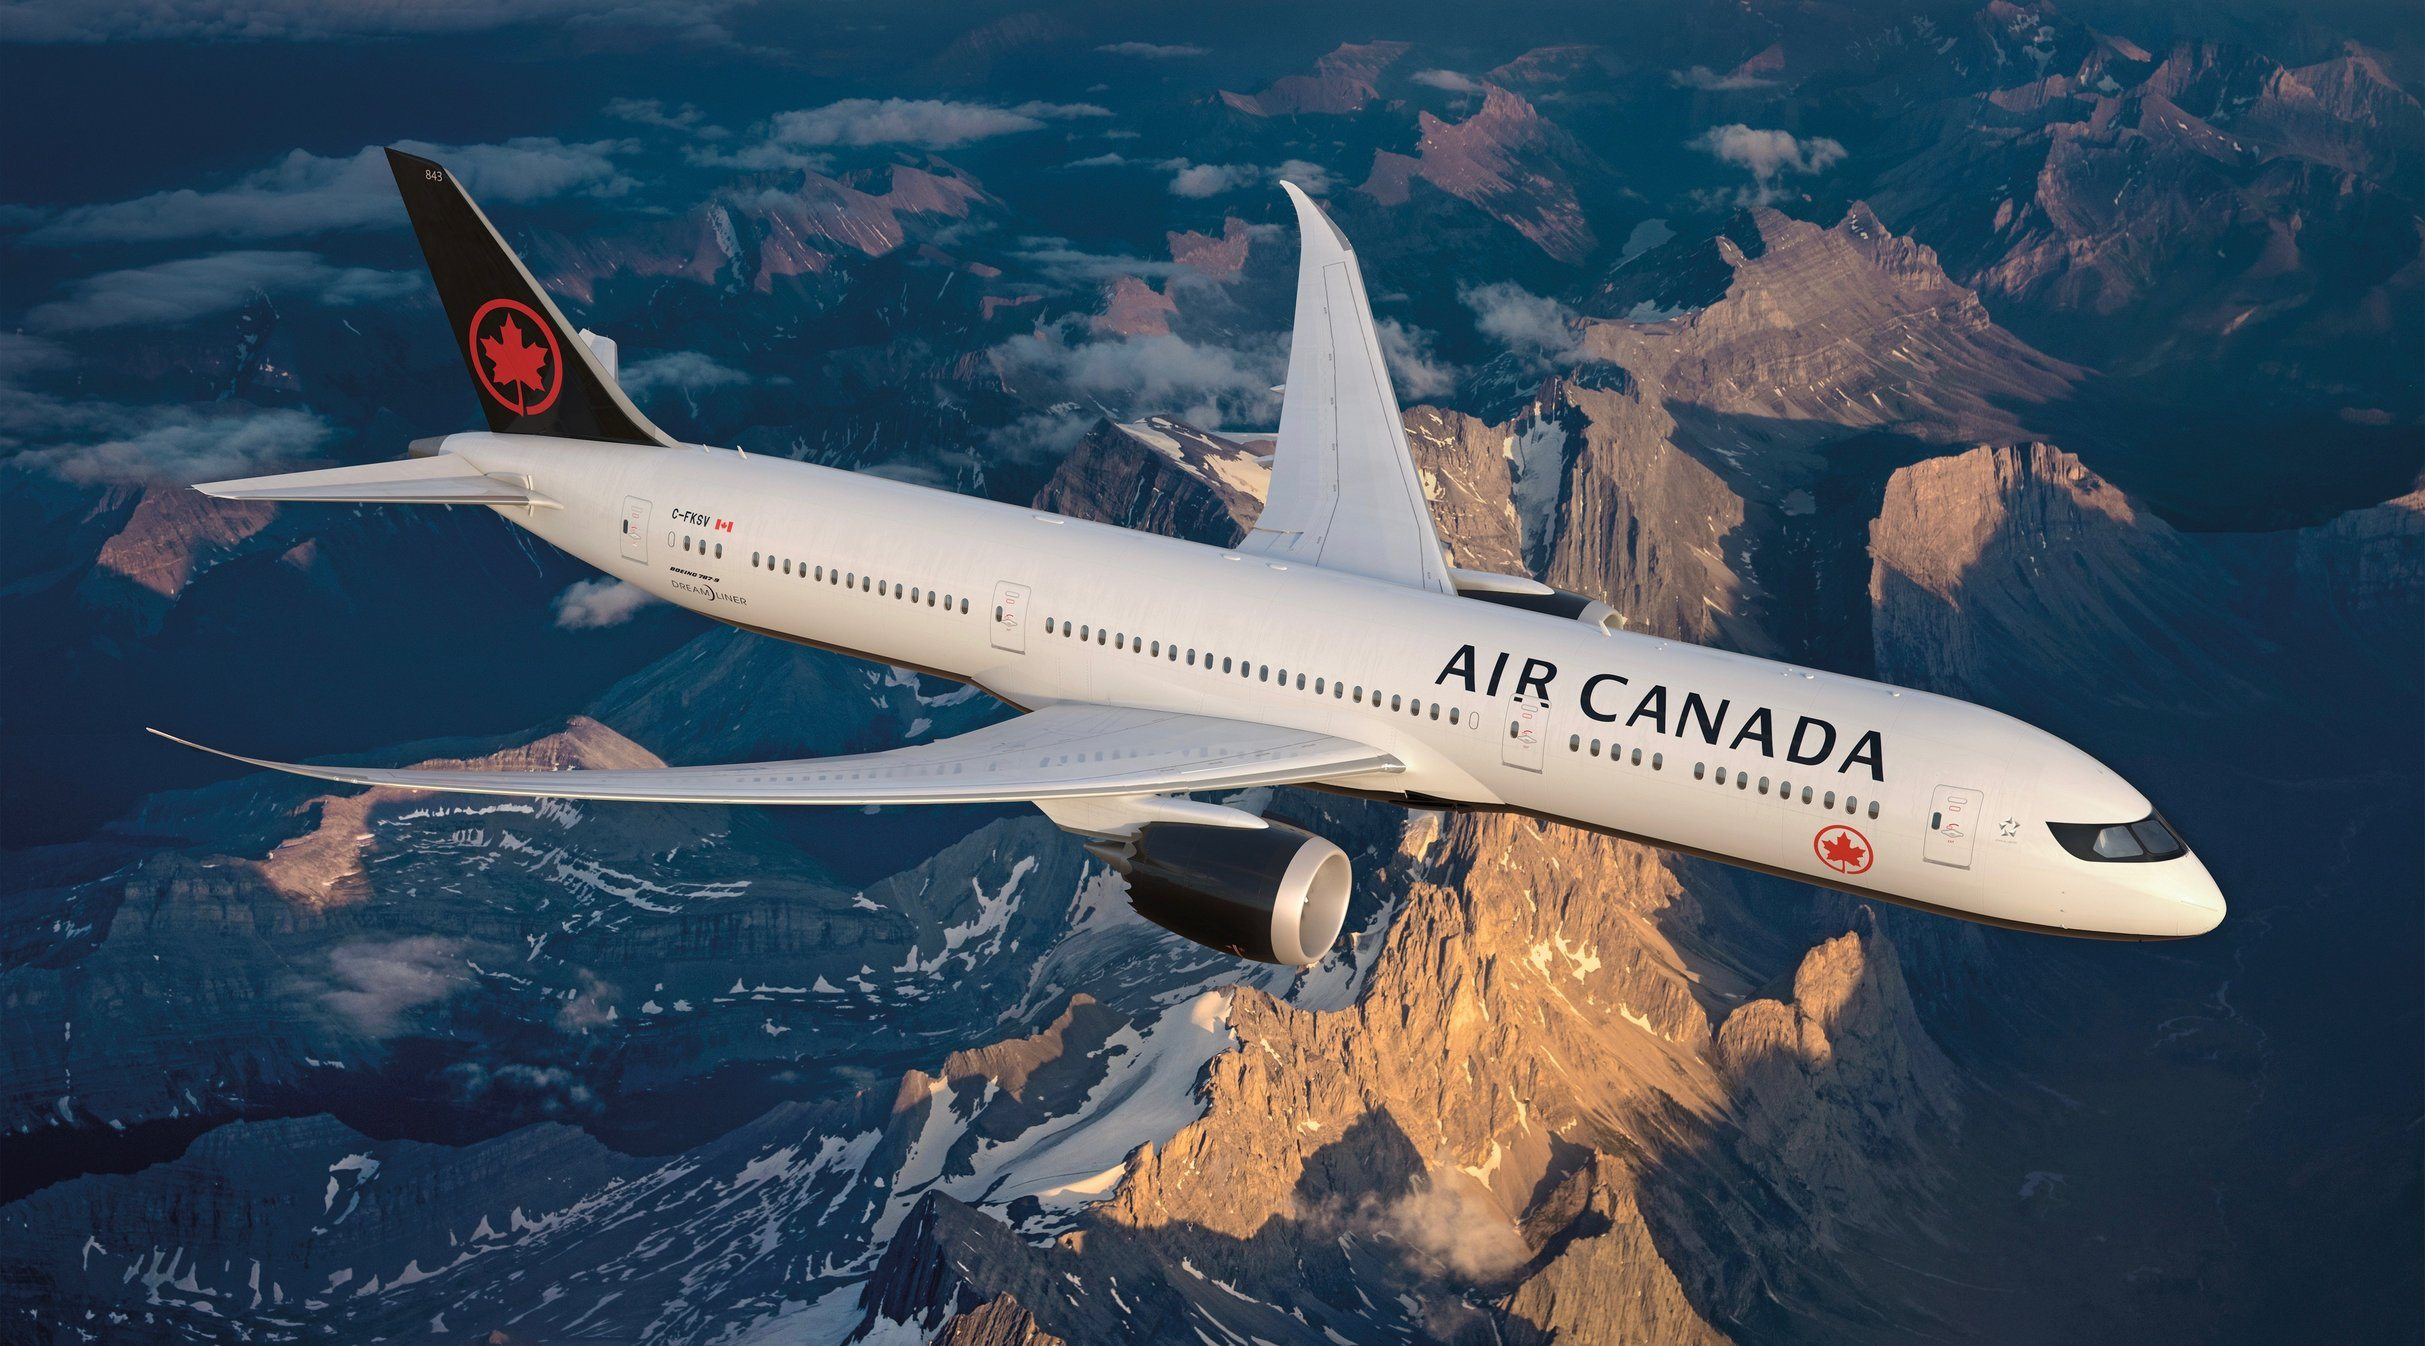 Air Canada cancelling Aeroplan to launch its own loyalty program